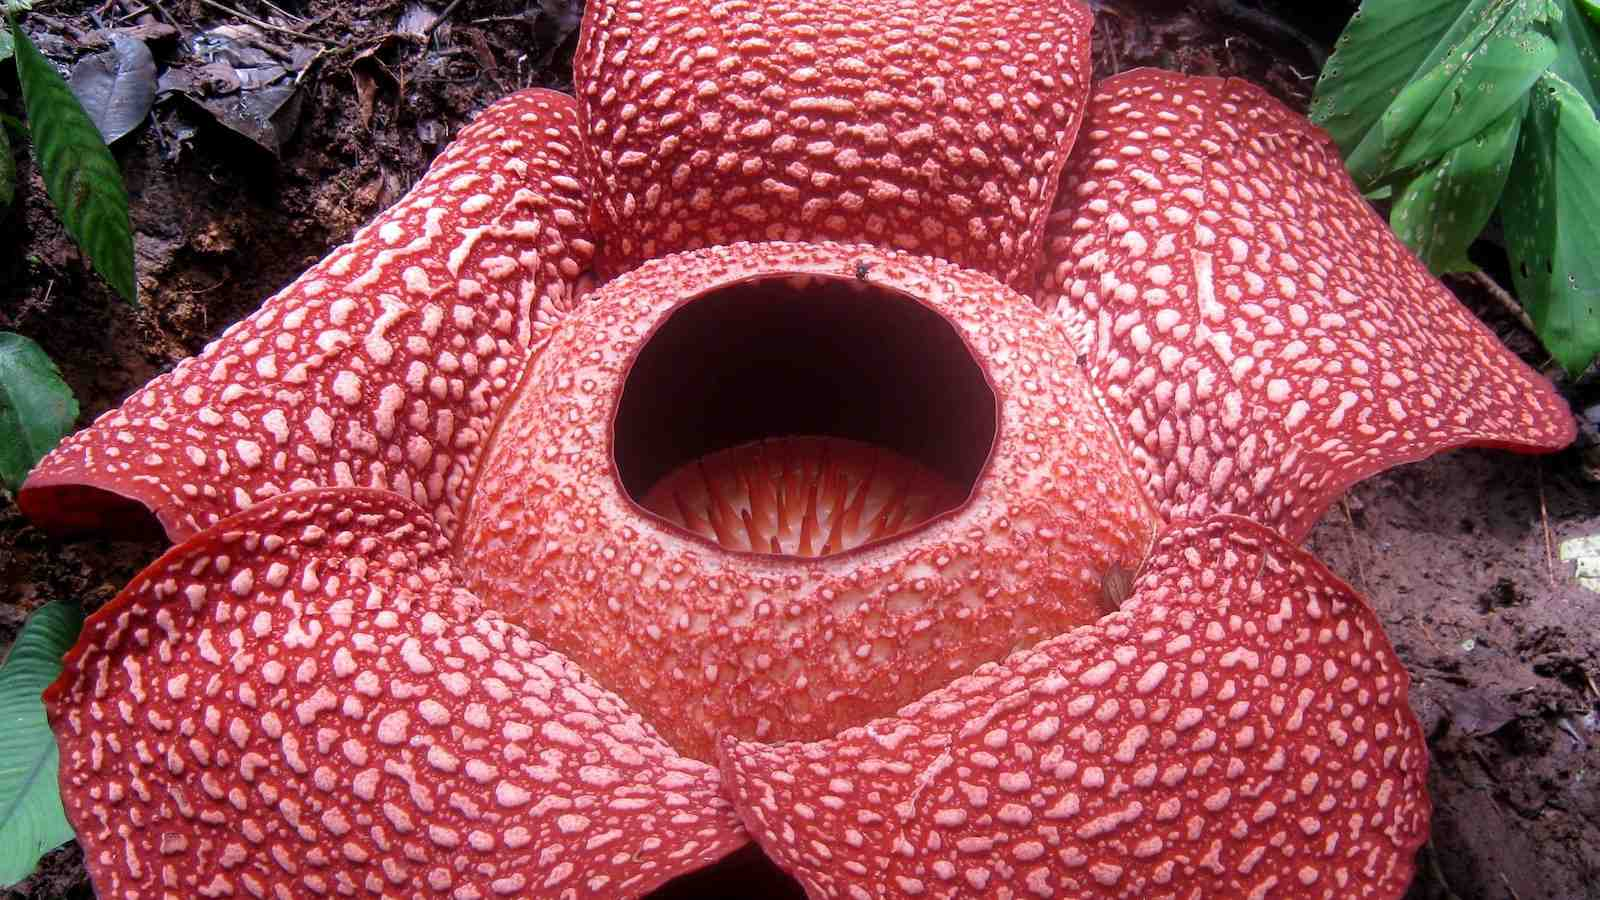 The Rafflesia arnoldii is a parasitic plant with the largest single flower in the world